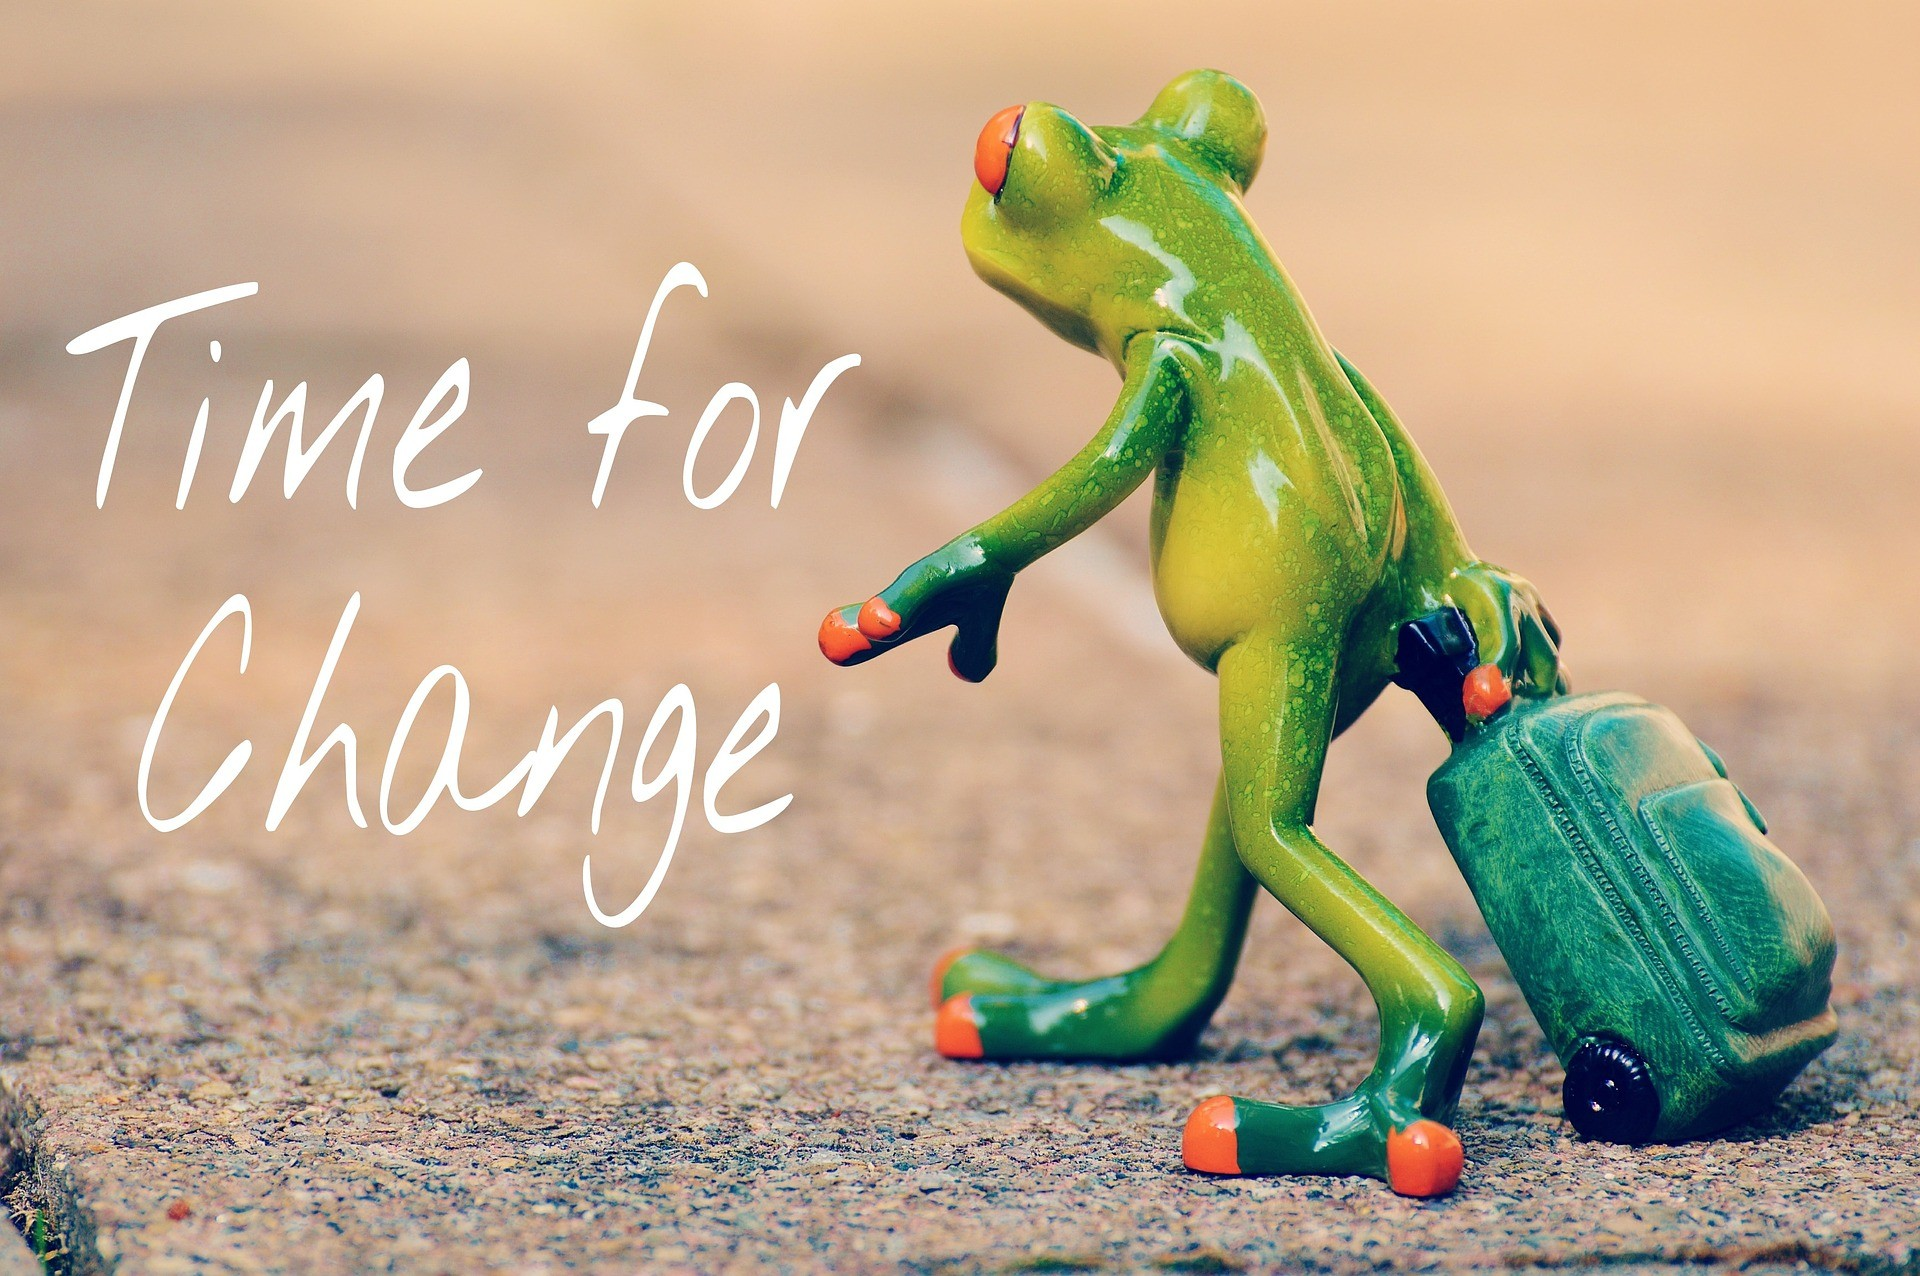 time-for-a-change-897441_1920